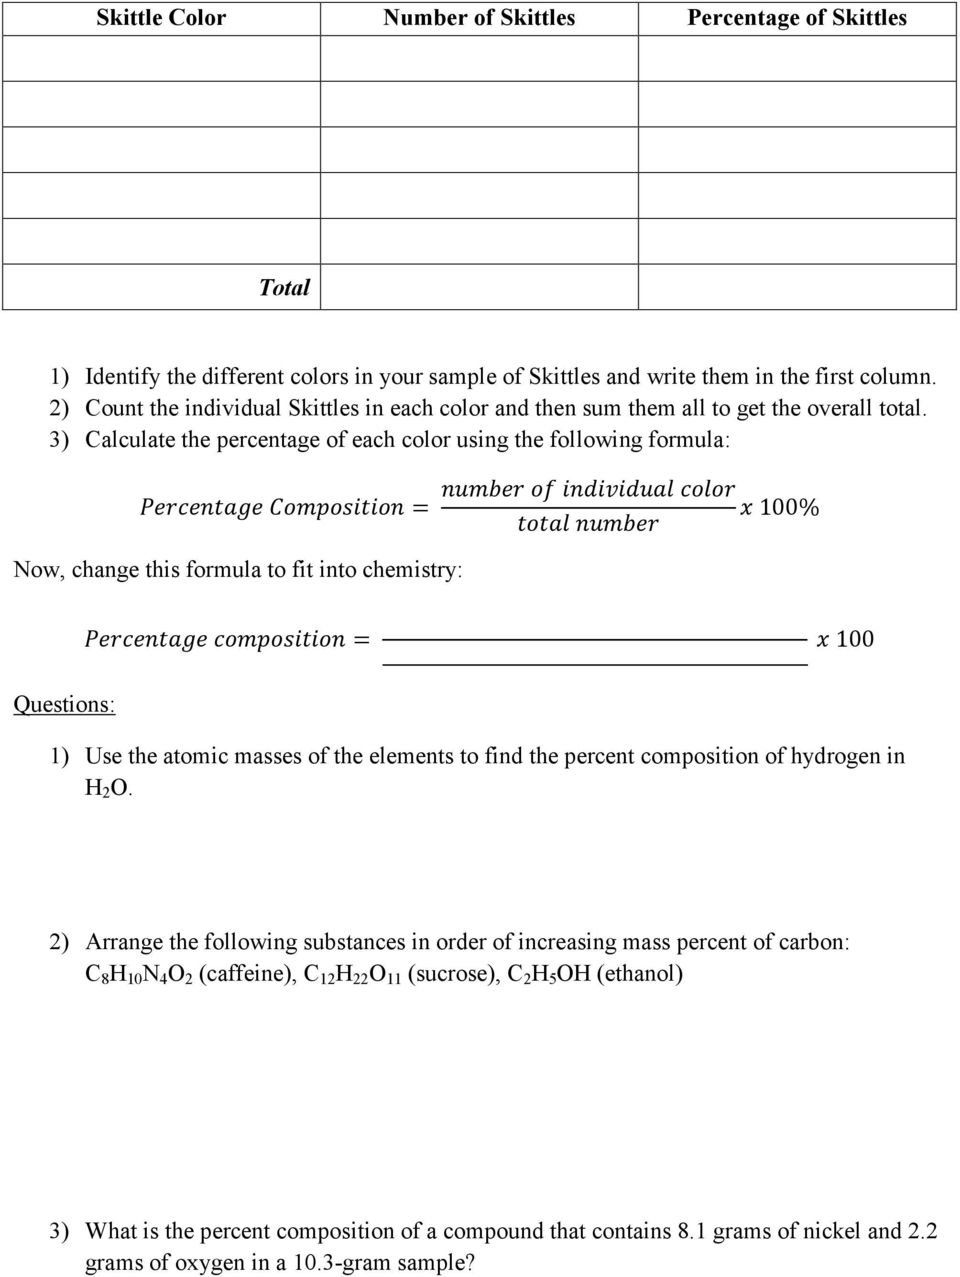 Worksheets Percent Composition By Mass Worksheet atomic massmolar mass percent composition empirical and 3 calculate the percentage of each color using following formula 100